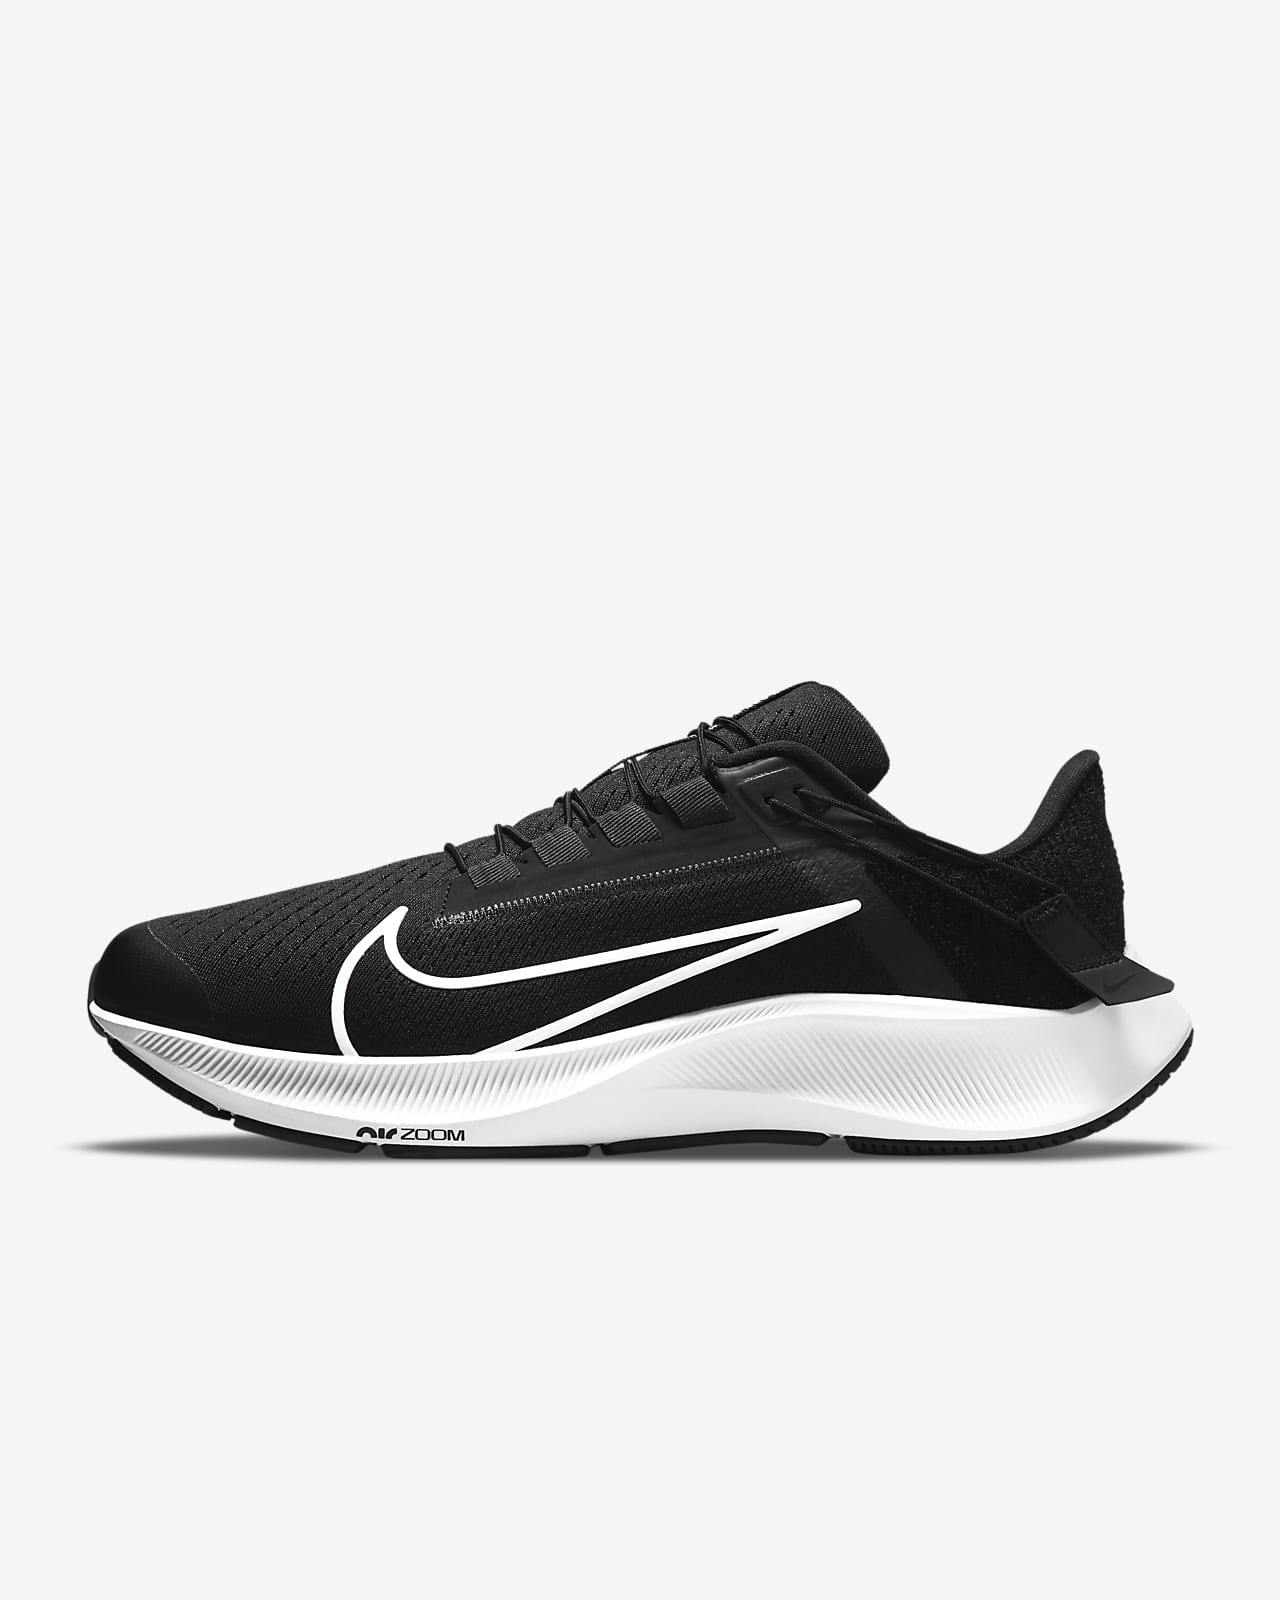 Chaussure de running Nike Air Zoom Pegasus 38 FlyEase pour Homme (extra large)